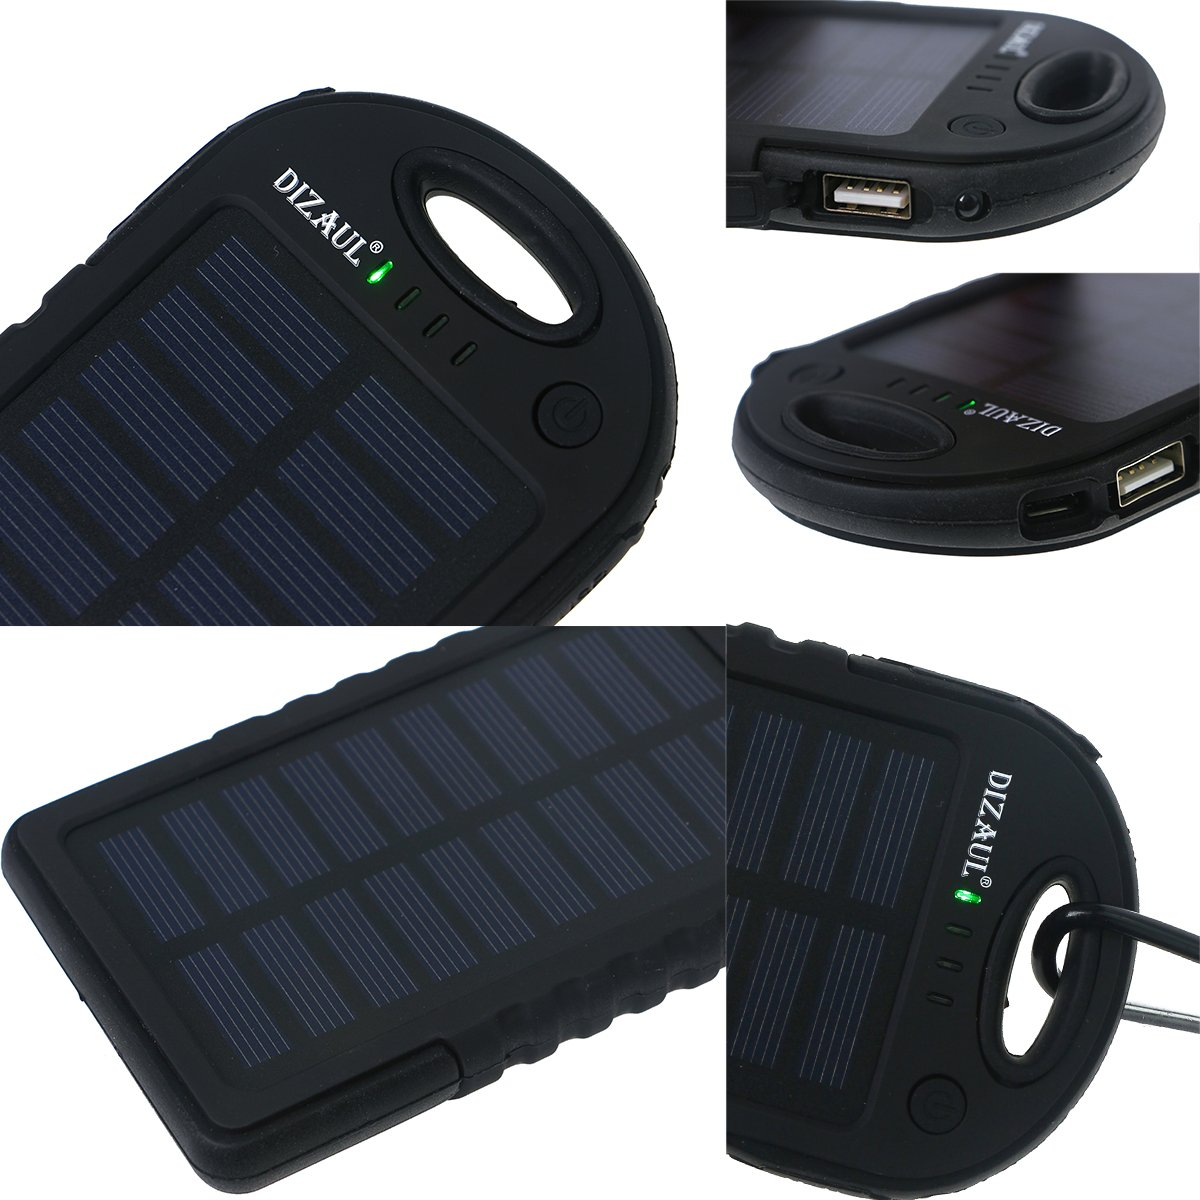 Solar Charger, Dizaul 5000mAh Portable Solar Power Bank Waterproof/Shockproof/Dustproof Dual USB Battery Bank for Cell Phone, Samsung, Android Phones, Windows Phones, GoPro Camera, GPS and More by dizauL (Image #3)